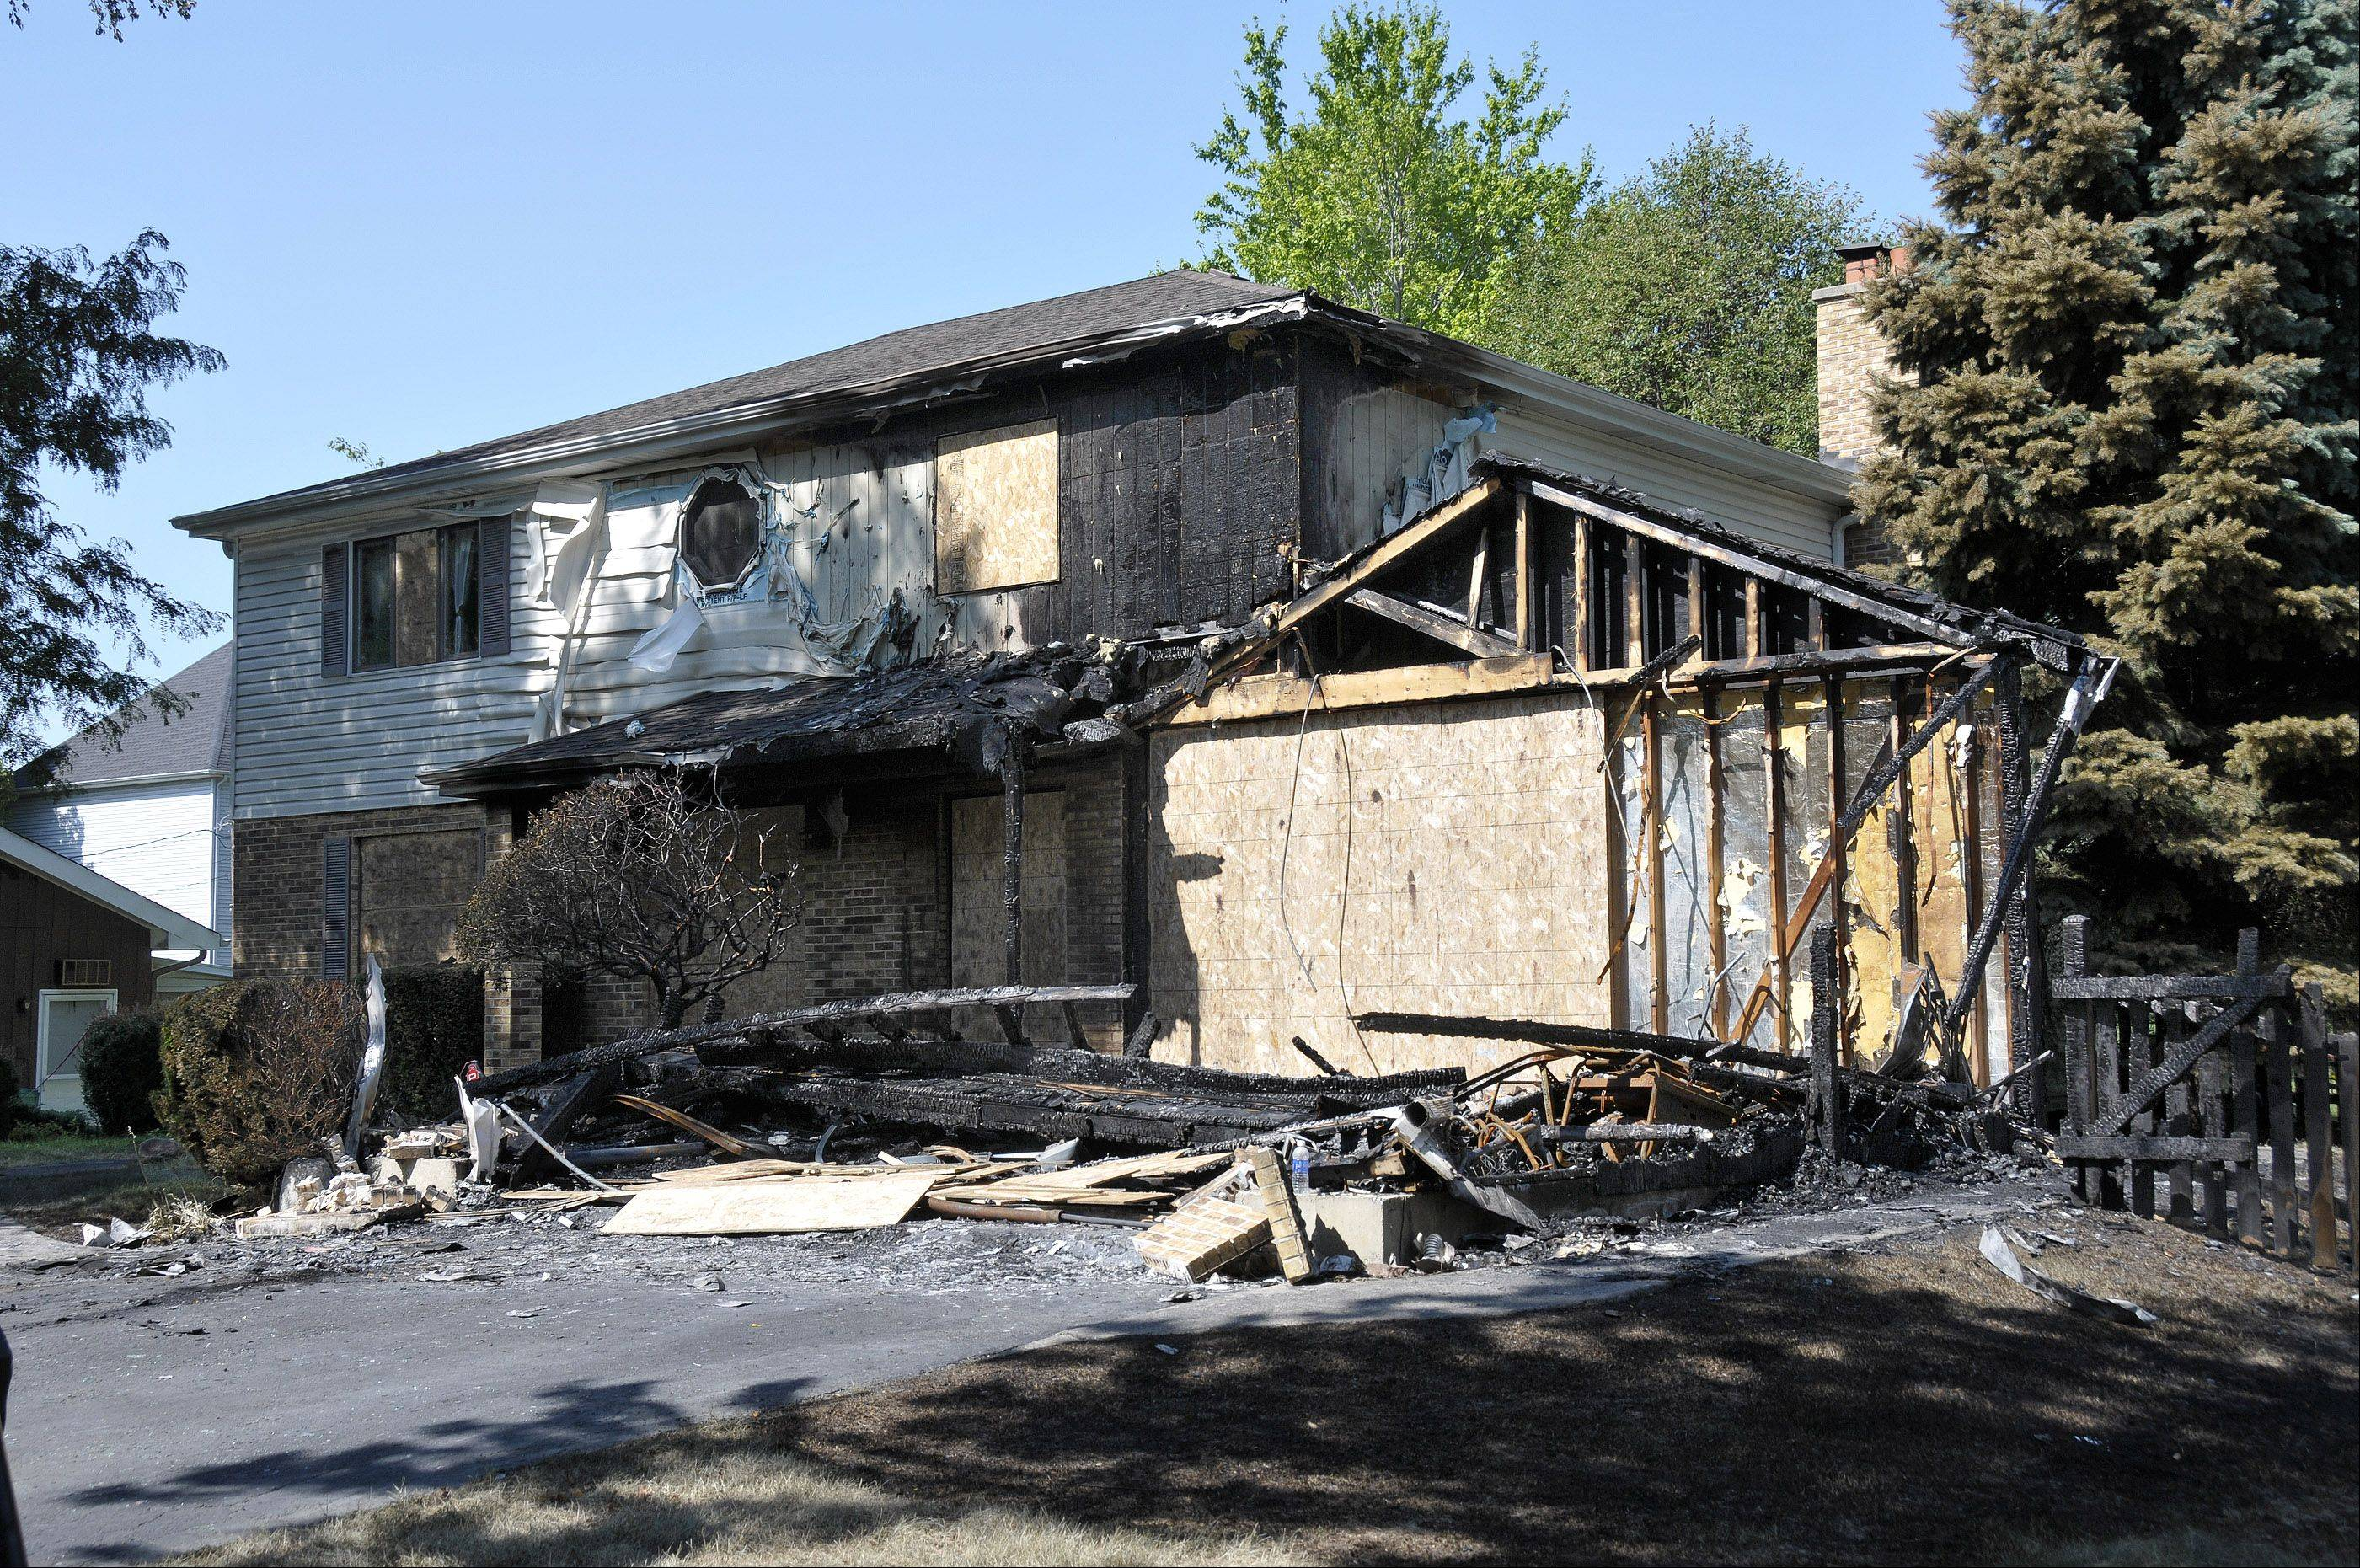 The scene of a July 22 fire on the 1000 block of South Ahrens Avenue in Lombard that killed one person and severely injured another.